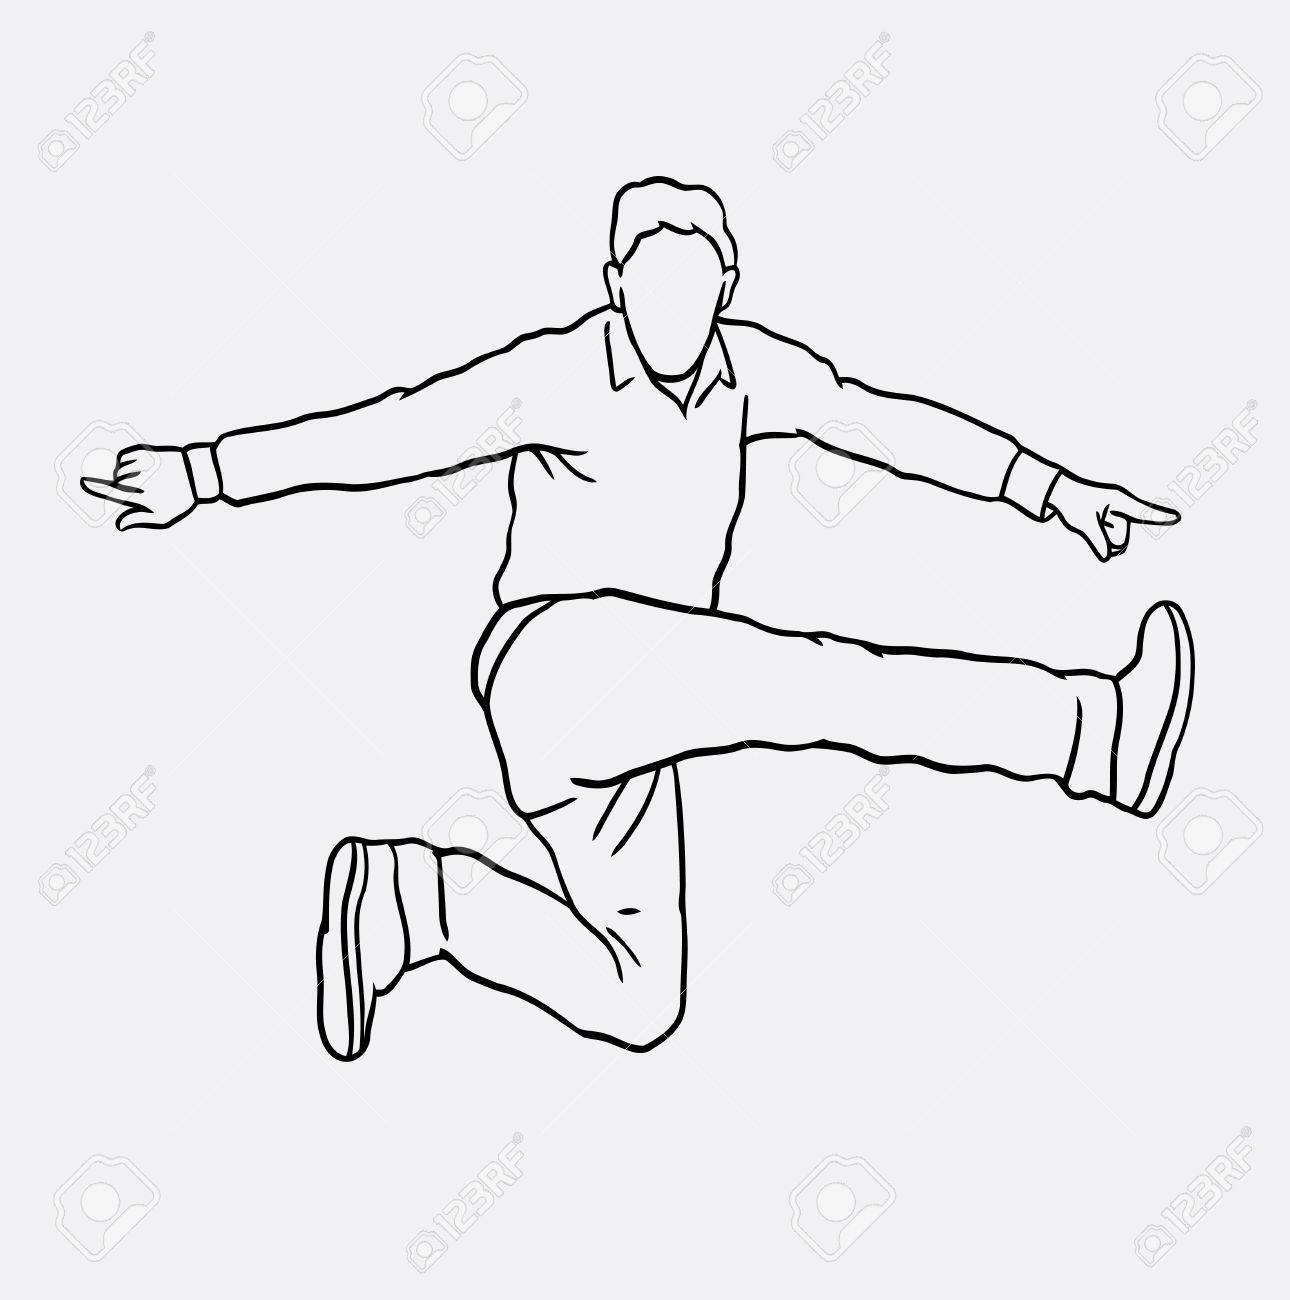 1290x1300 Man Jumping Sketch Vector. Male Activity Drawing. Good Use